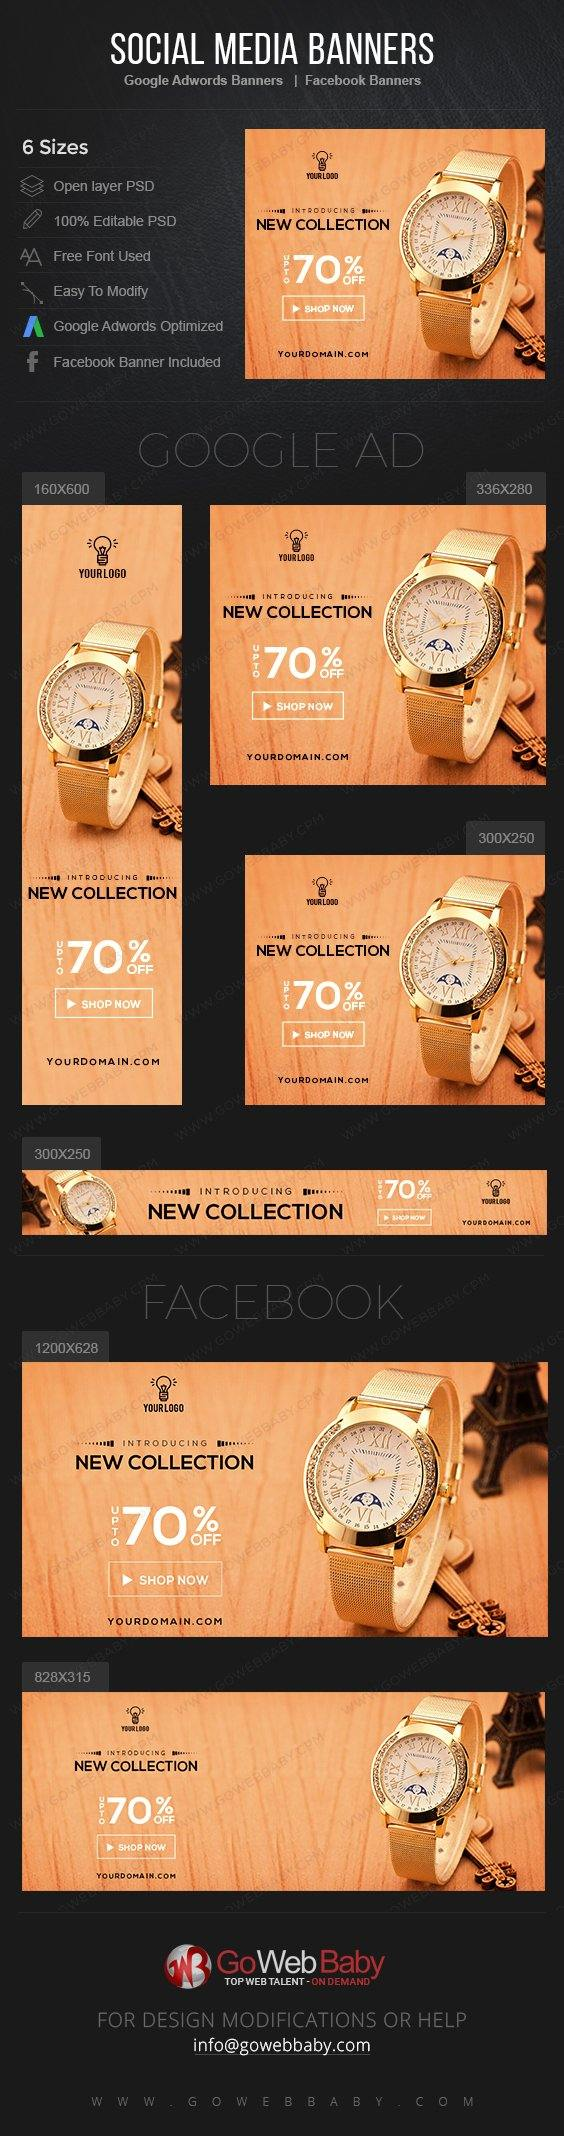 Google Adwords Display Banner With Facebook Banners - Luxury Watch For Men - GoWebBaby.Com